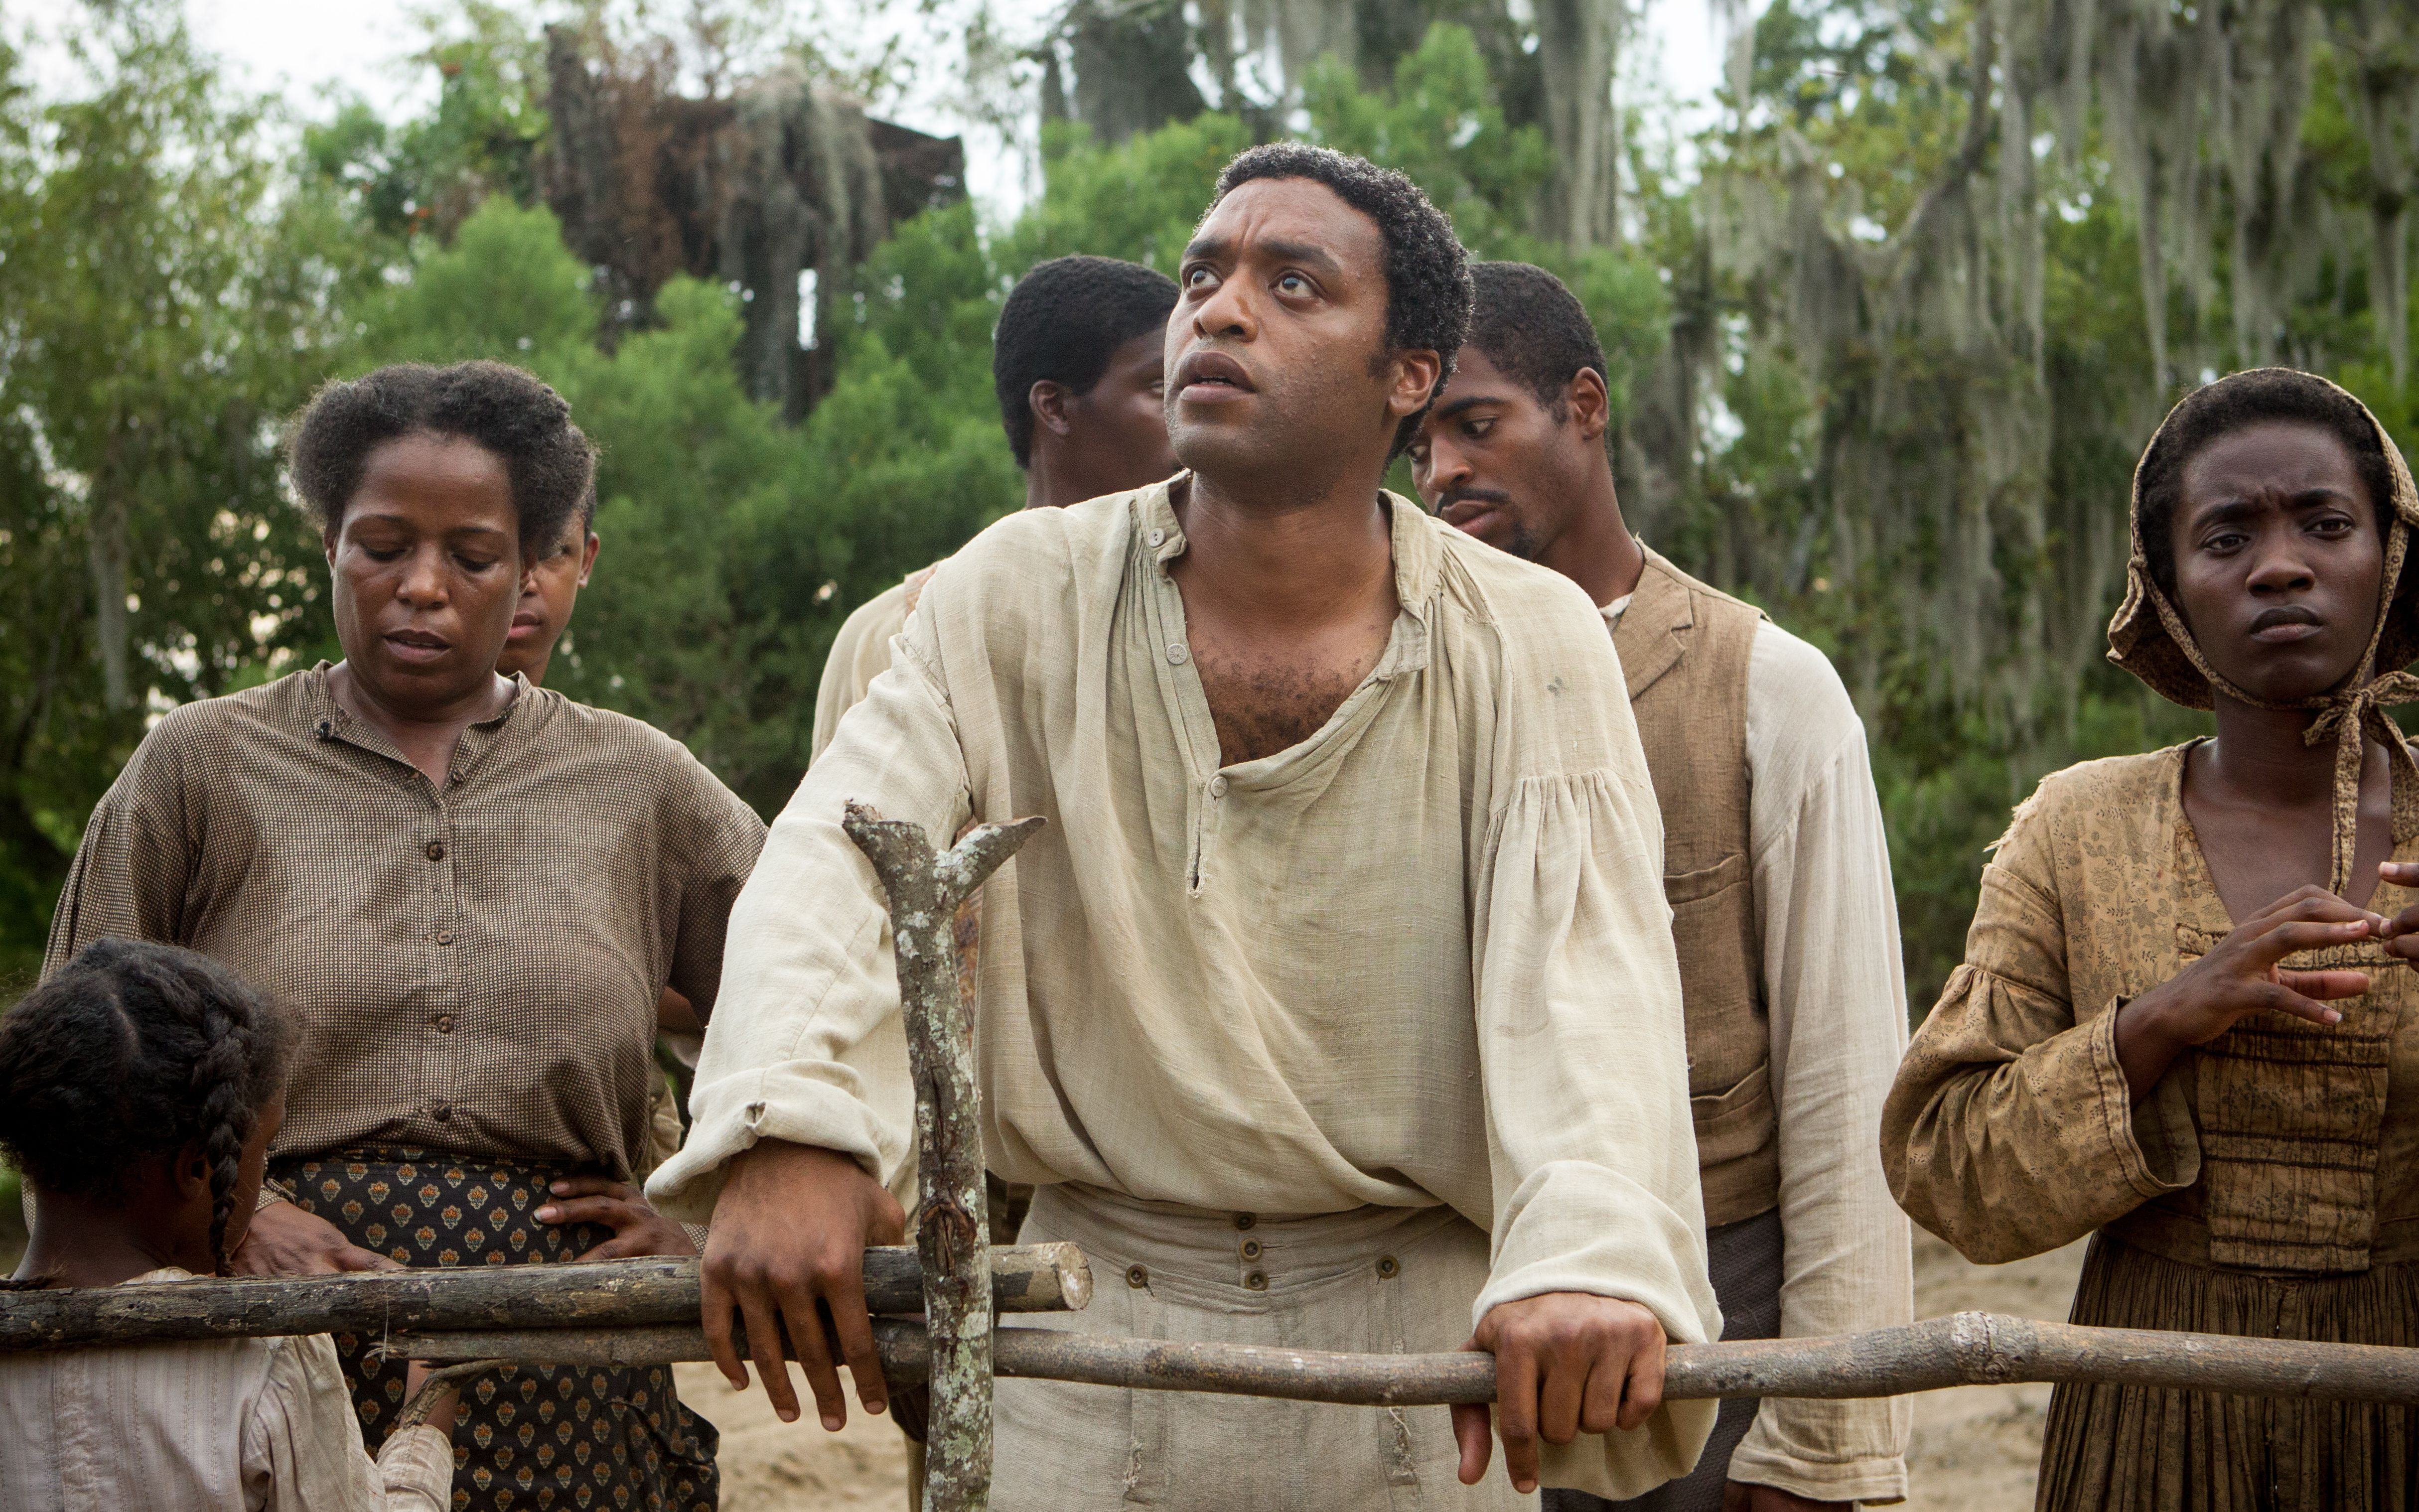 Chiwetel Ejiofor as Solomon Northup looking up